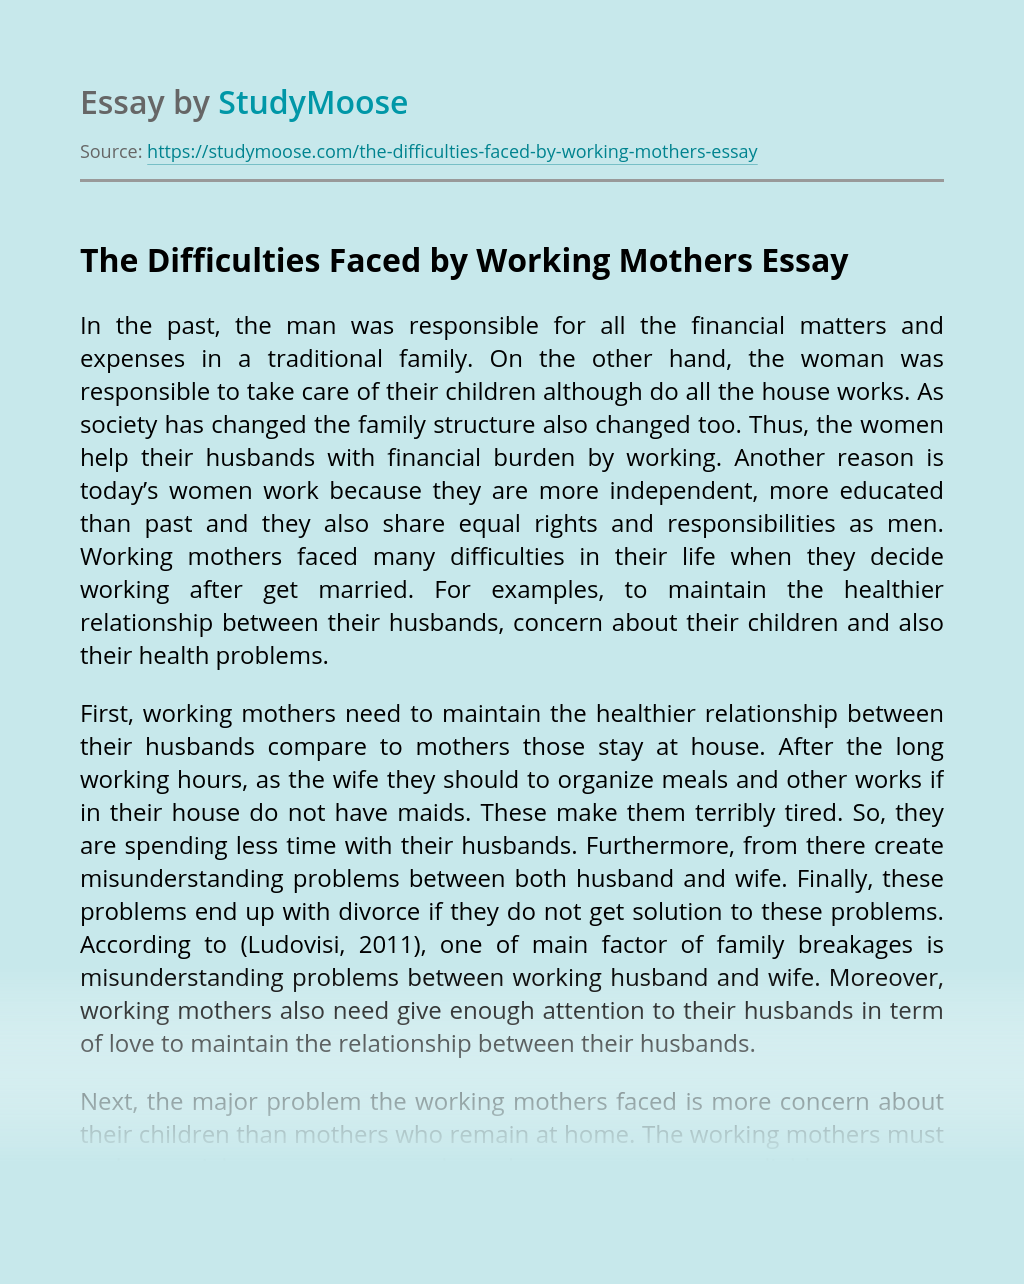 The Difficulties Faced by Working Mothers